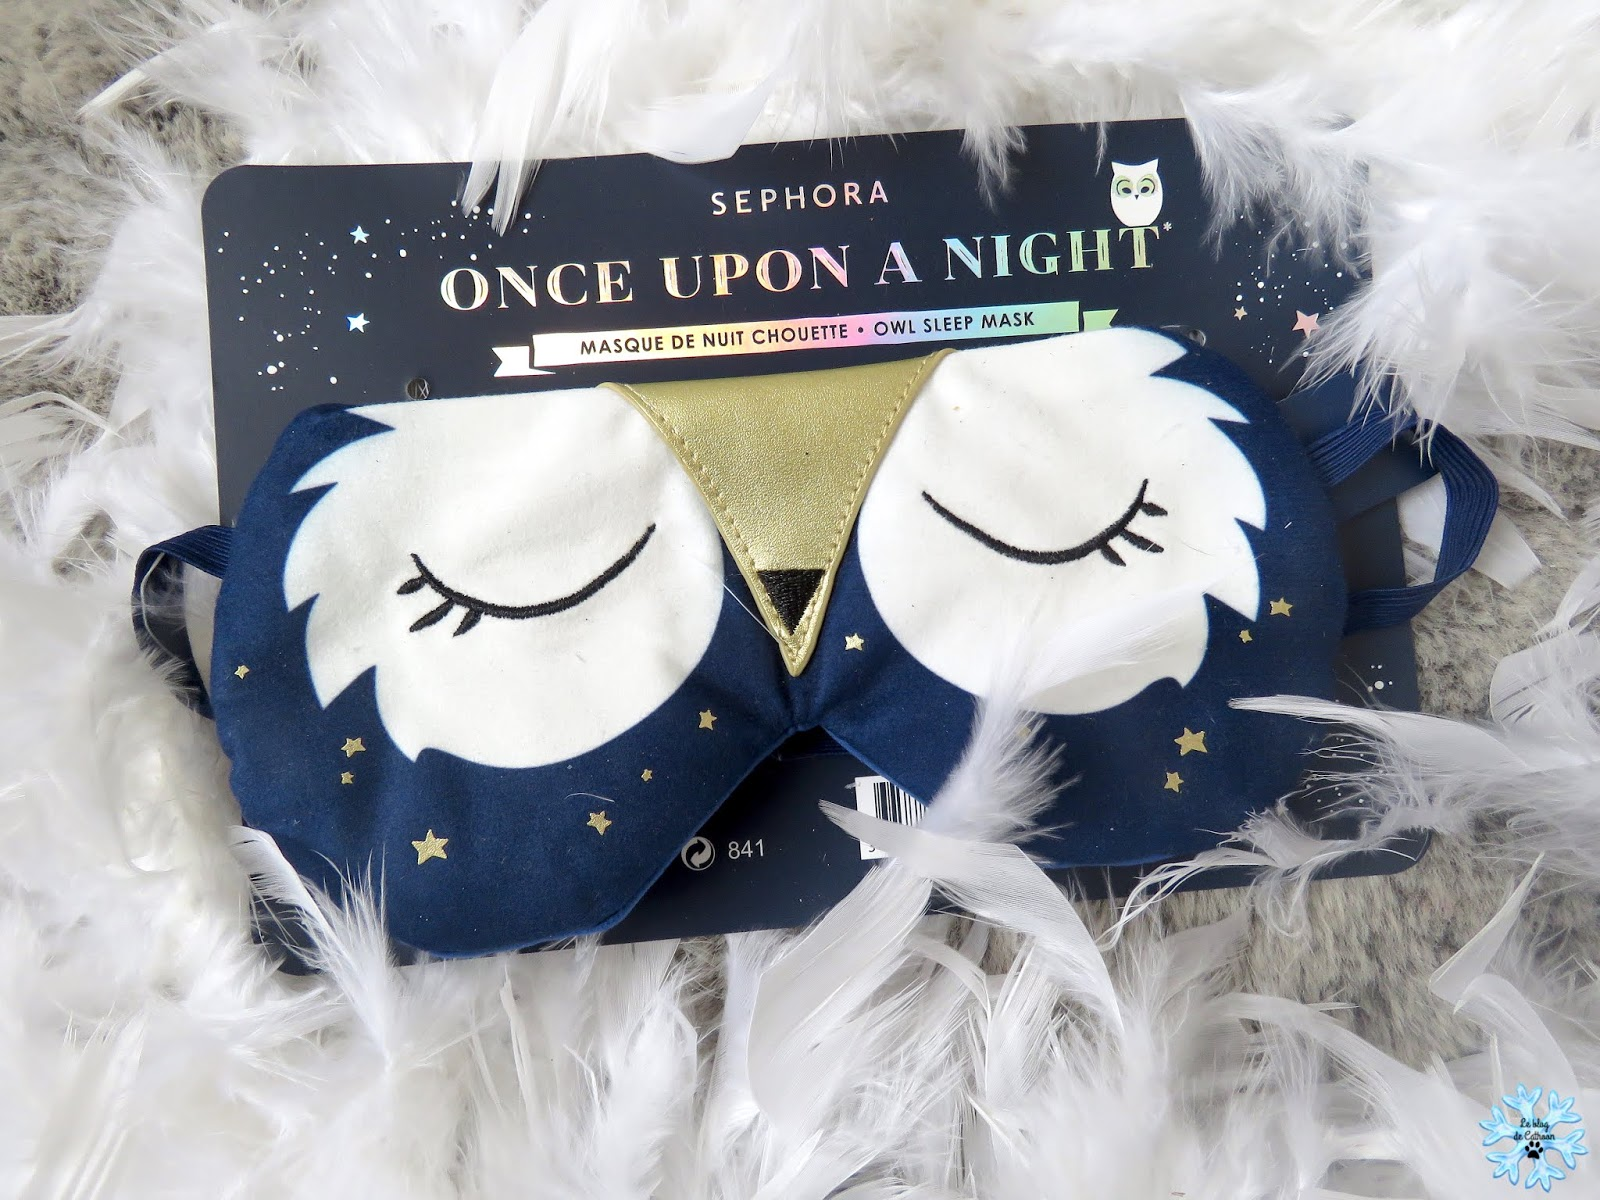 Masque de nuit chouette - collection noel 2018 Sephora